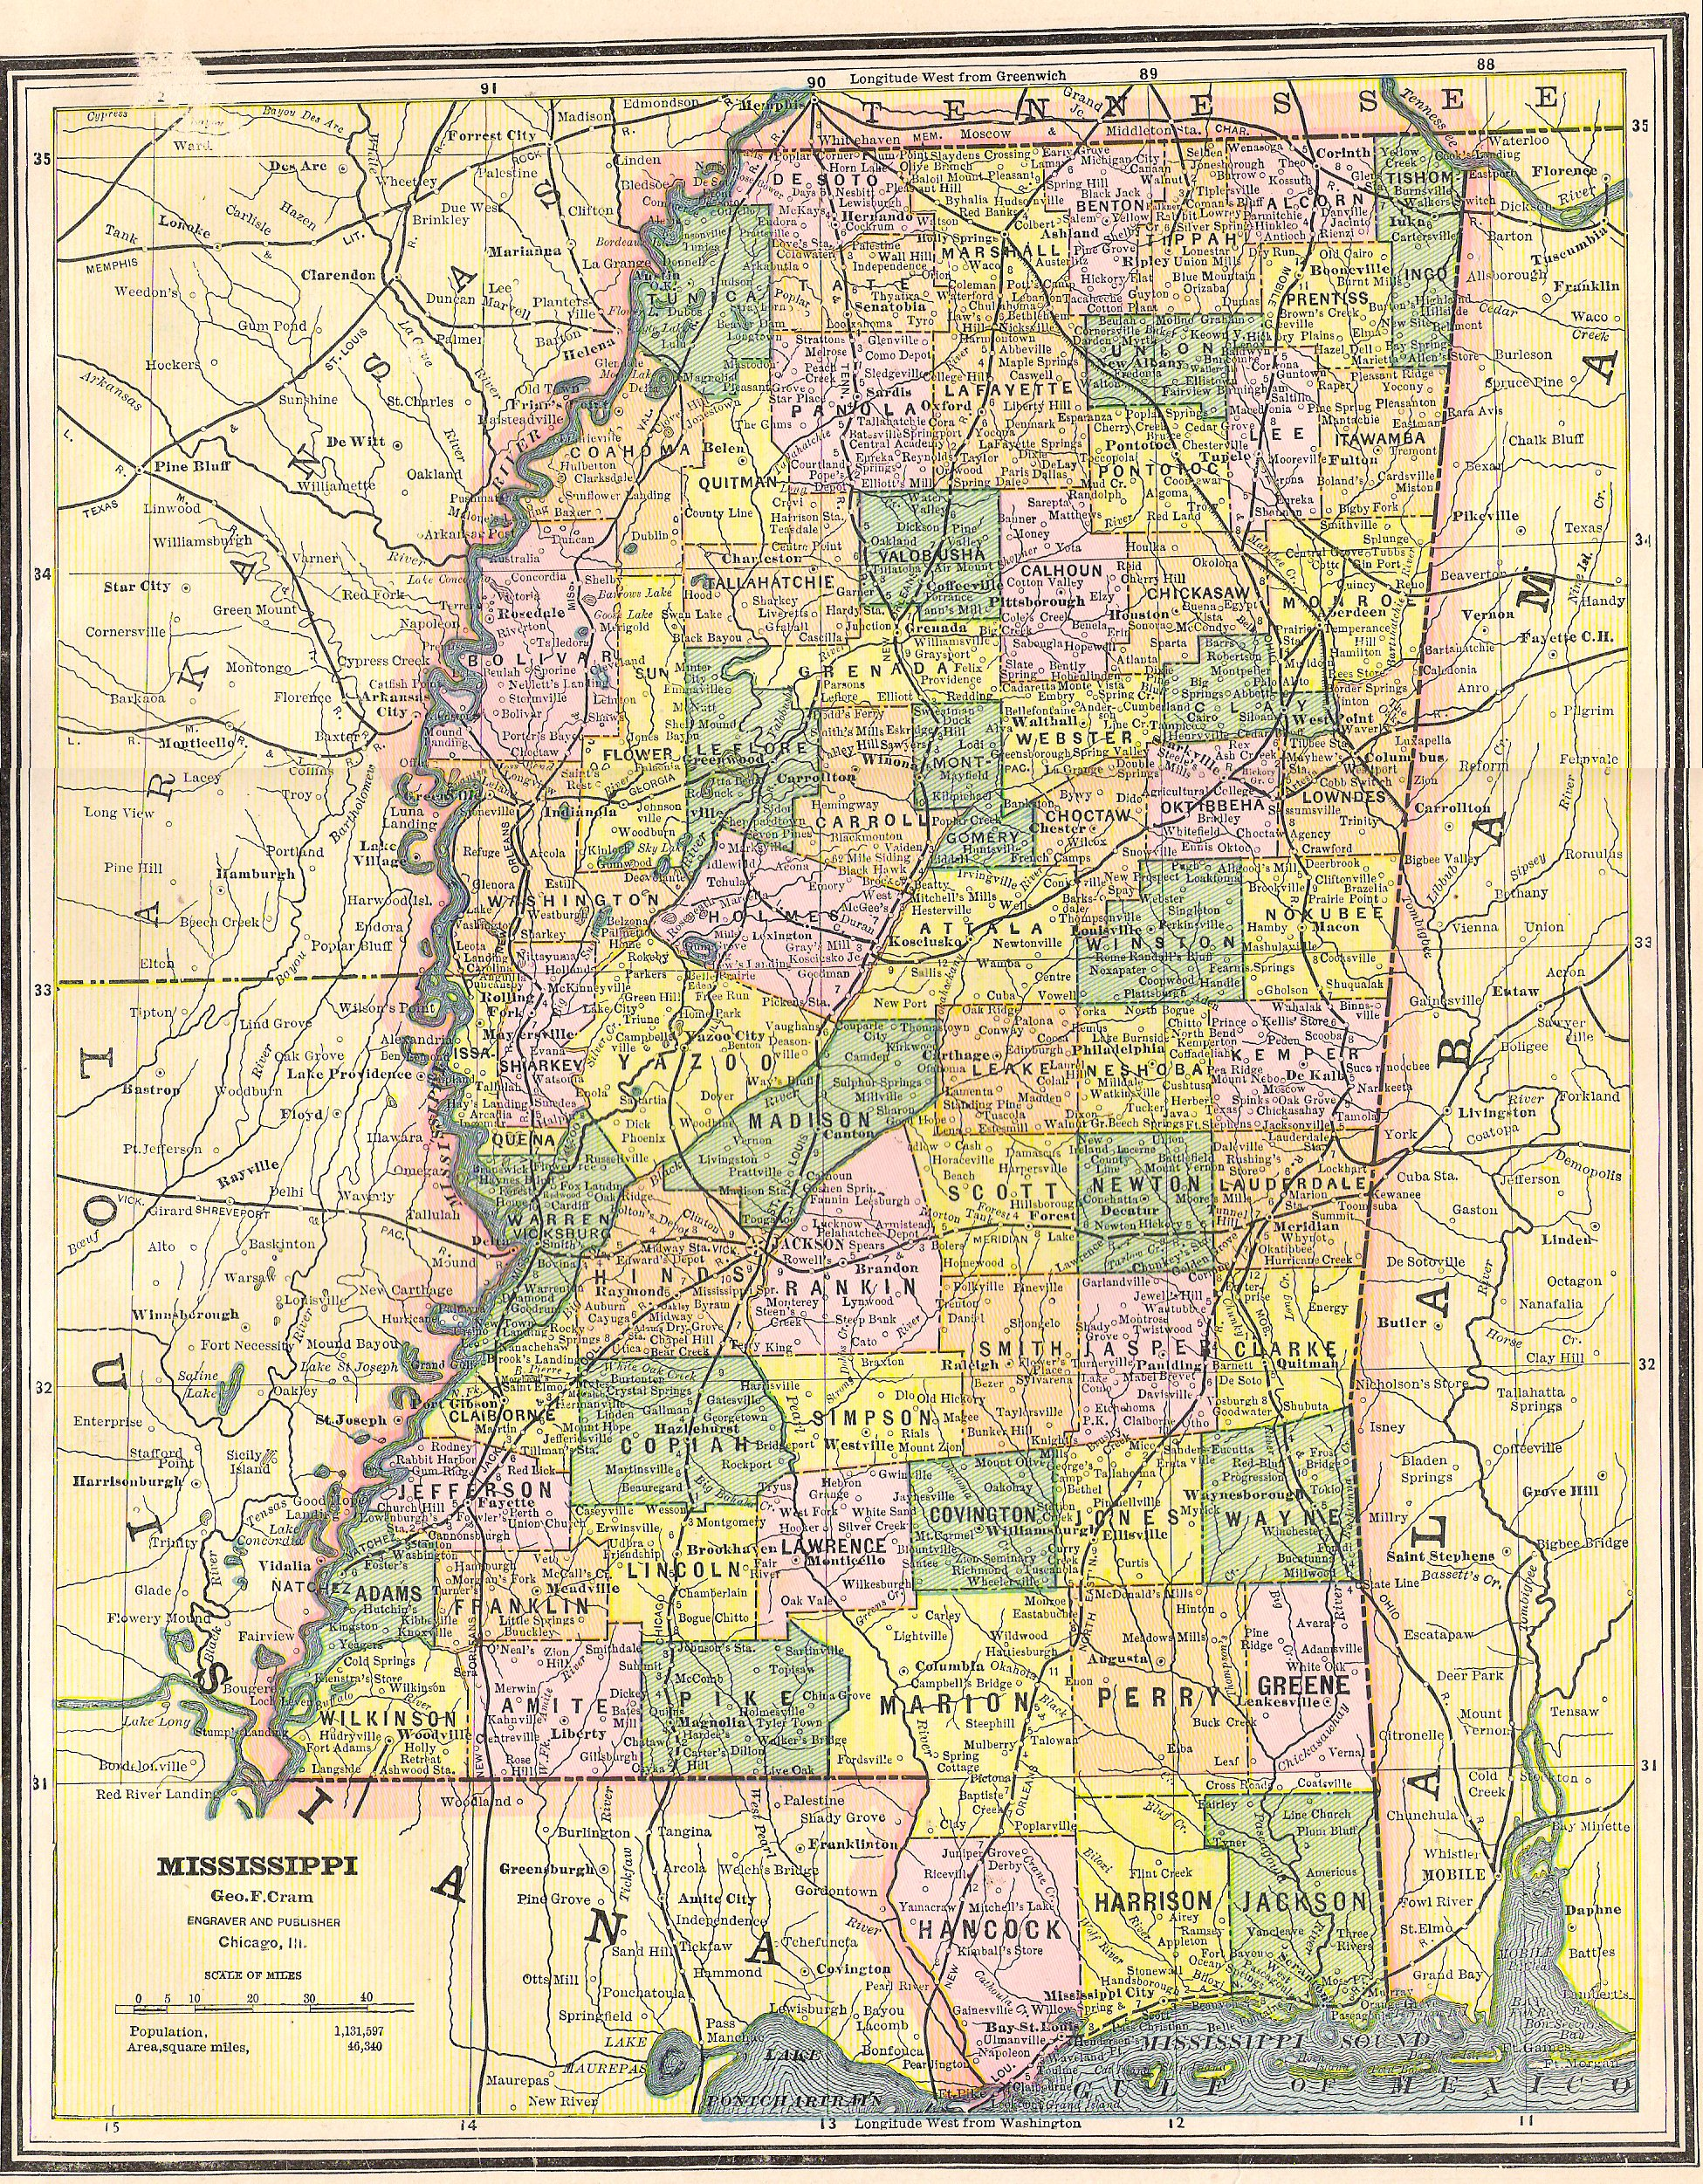 Adams County & Mississippi Maps at Mississippi Genealogy ...